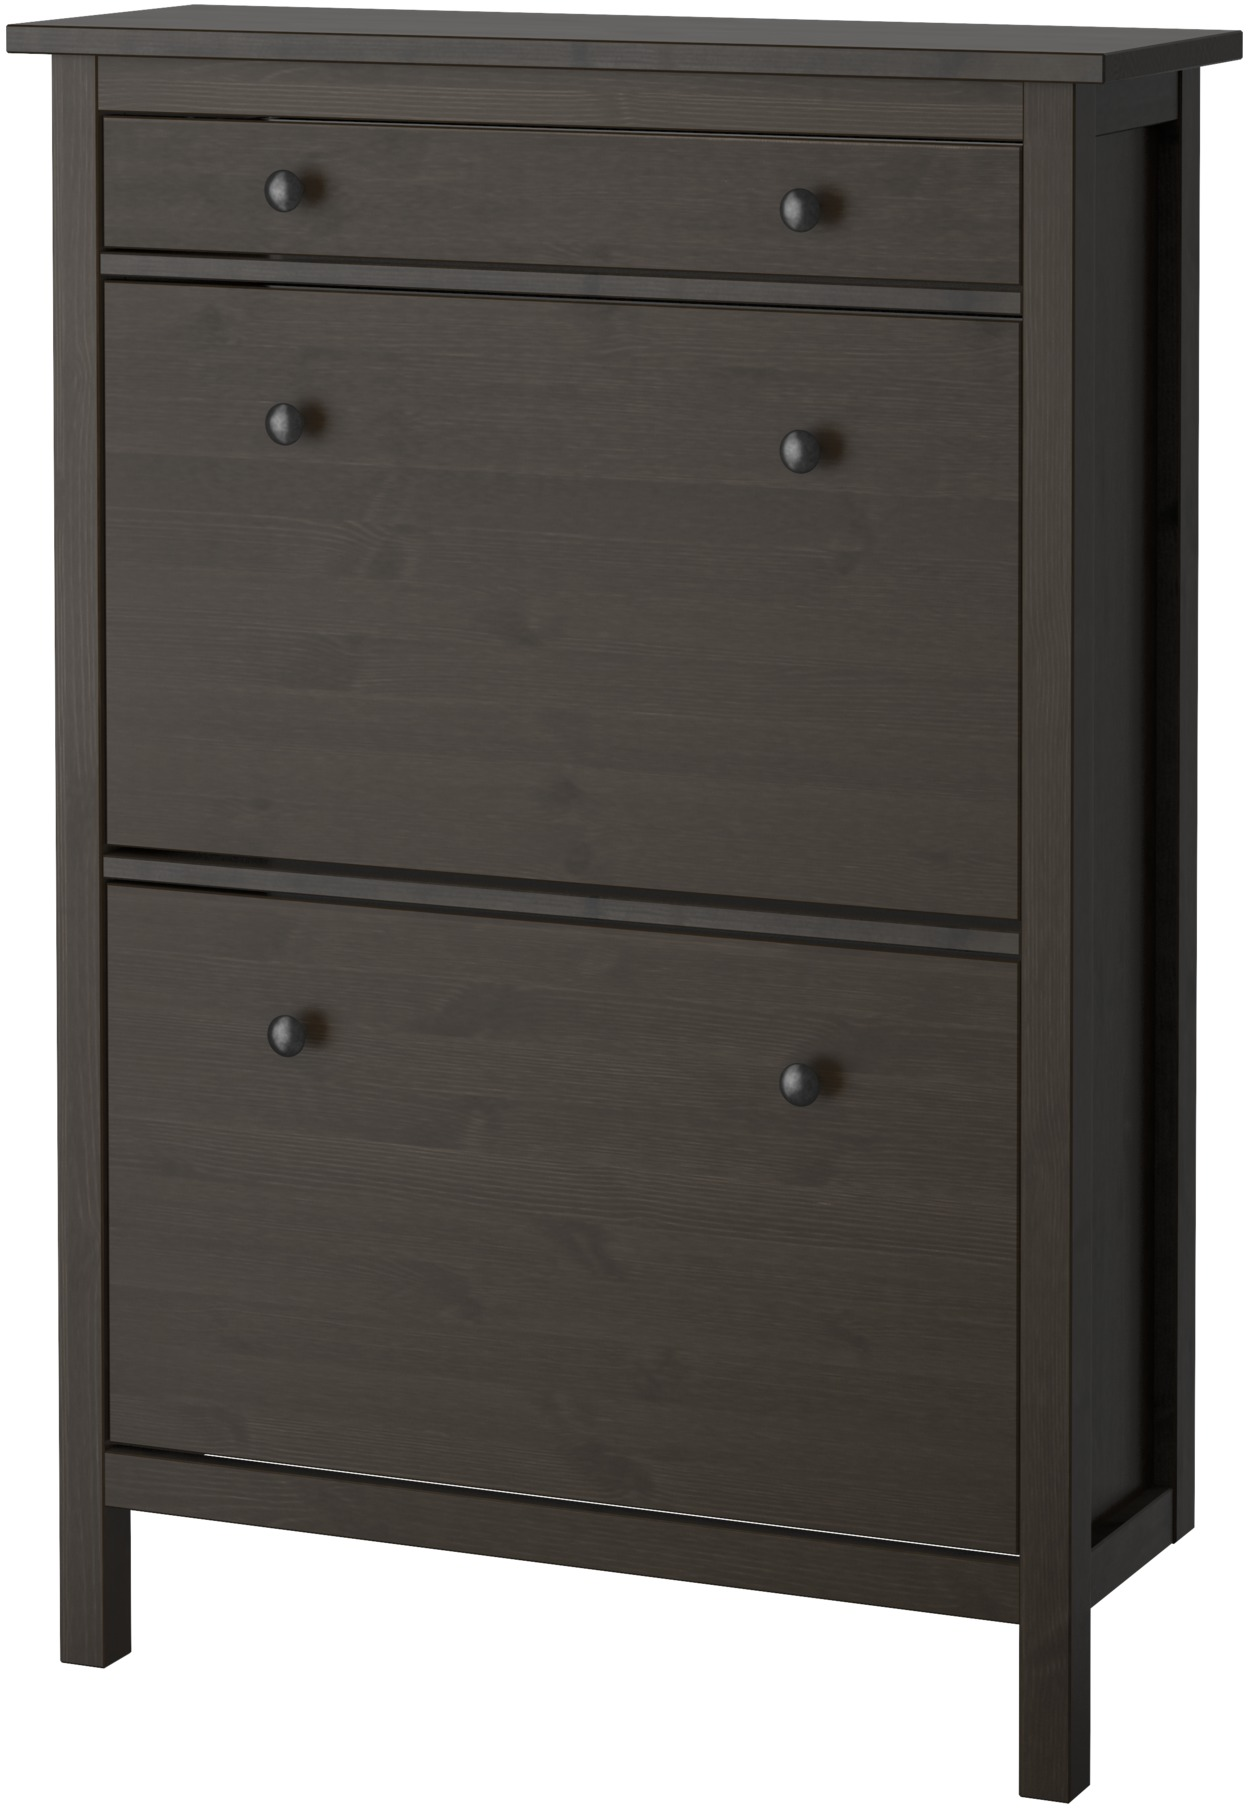 HEMNES Shoe cabinet with 2 compartments - black-brown - IKEA